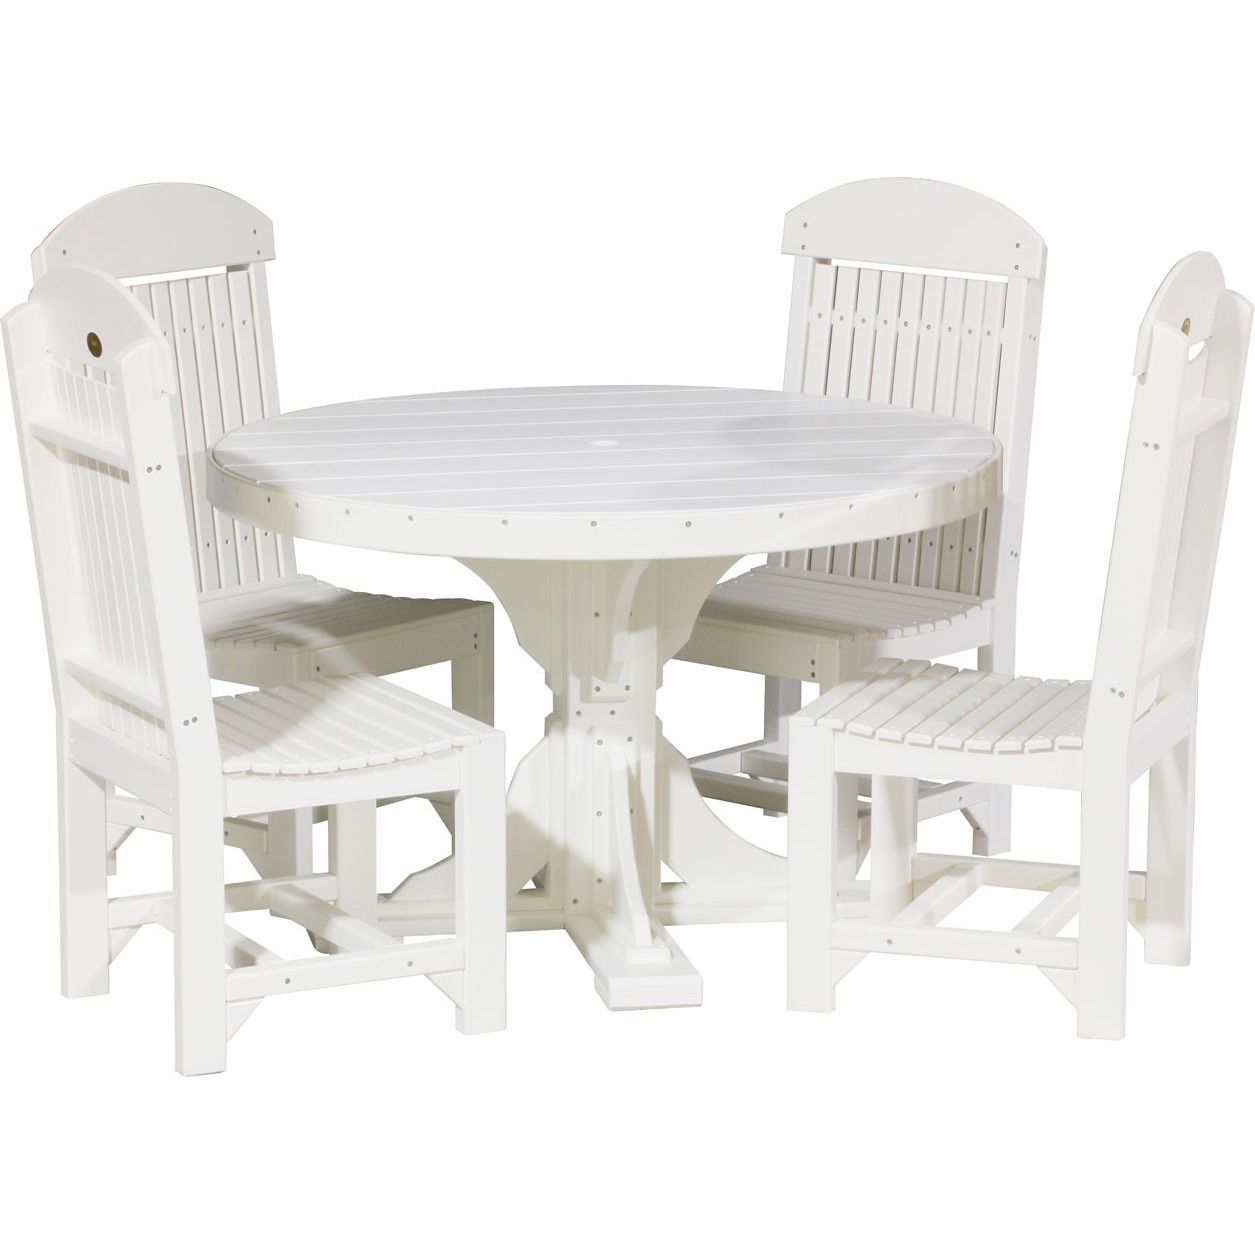 LuxCraft Recycled Plastic 4ft. Round Table Set With 4 Chairs